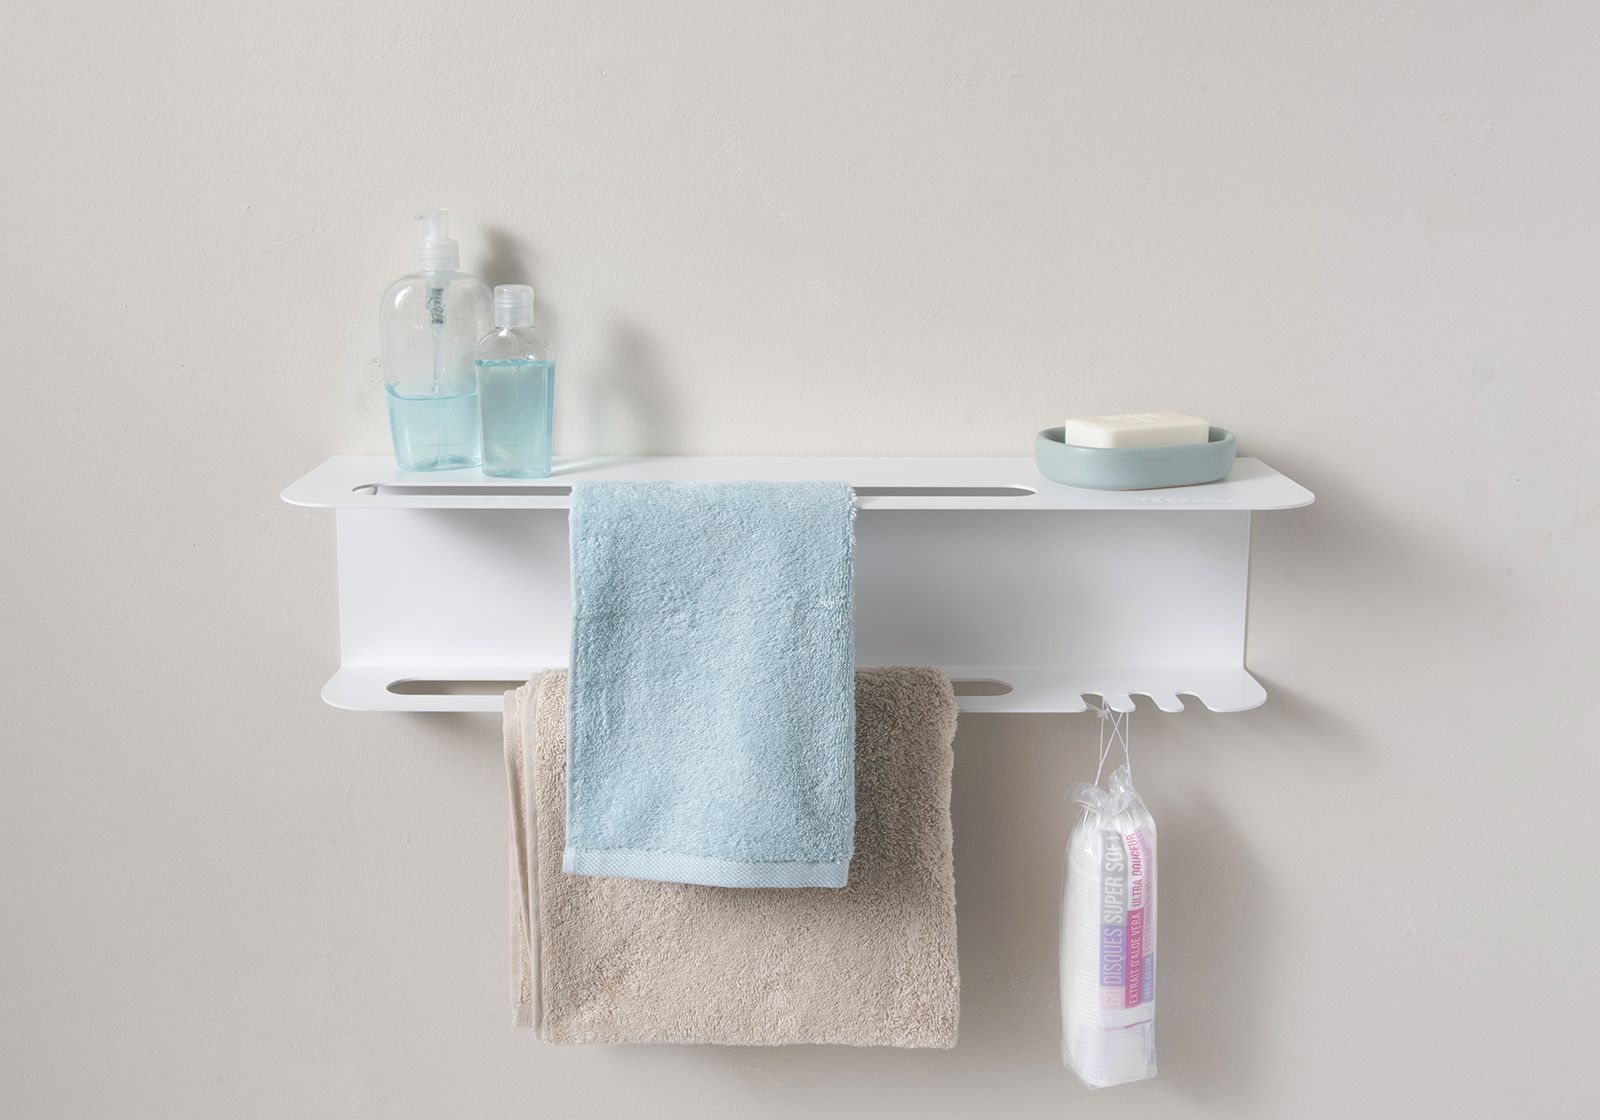 joanna bars chip magnolia towel rack wood of shelf mgnlprdct gaines products metal mounted